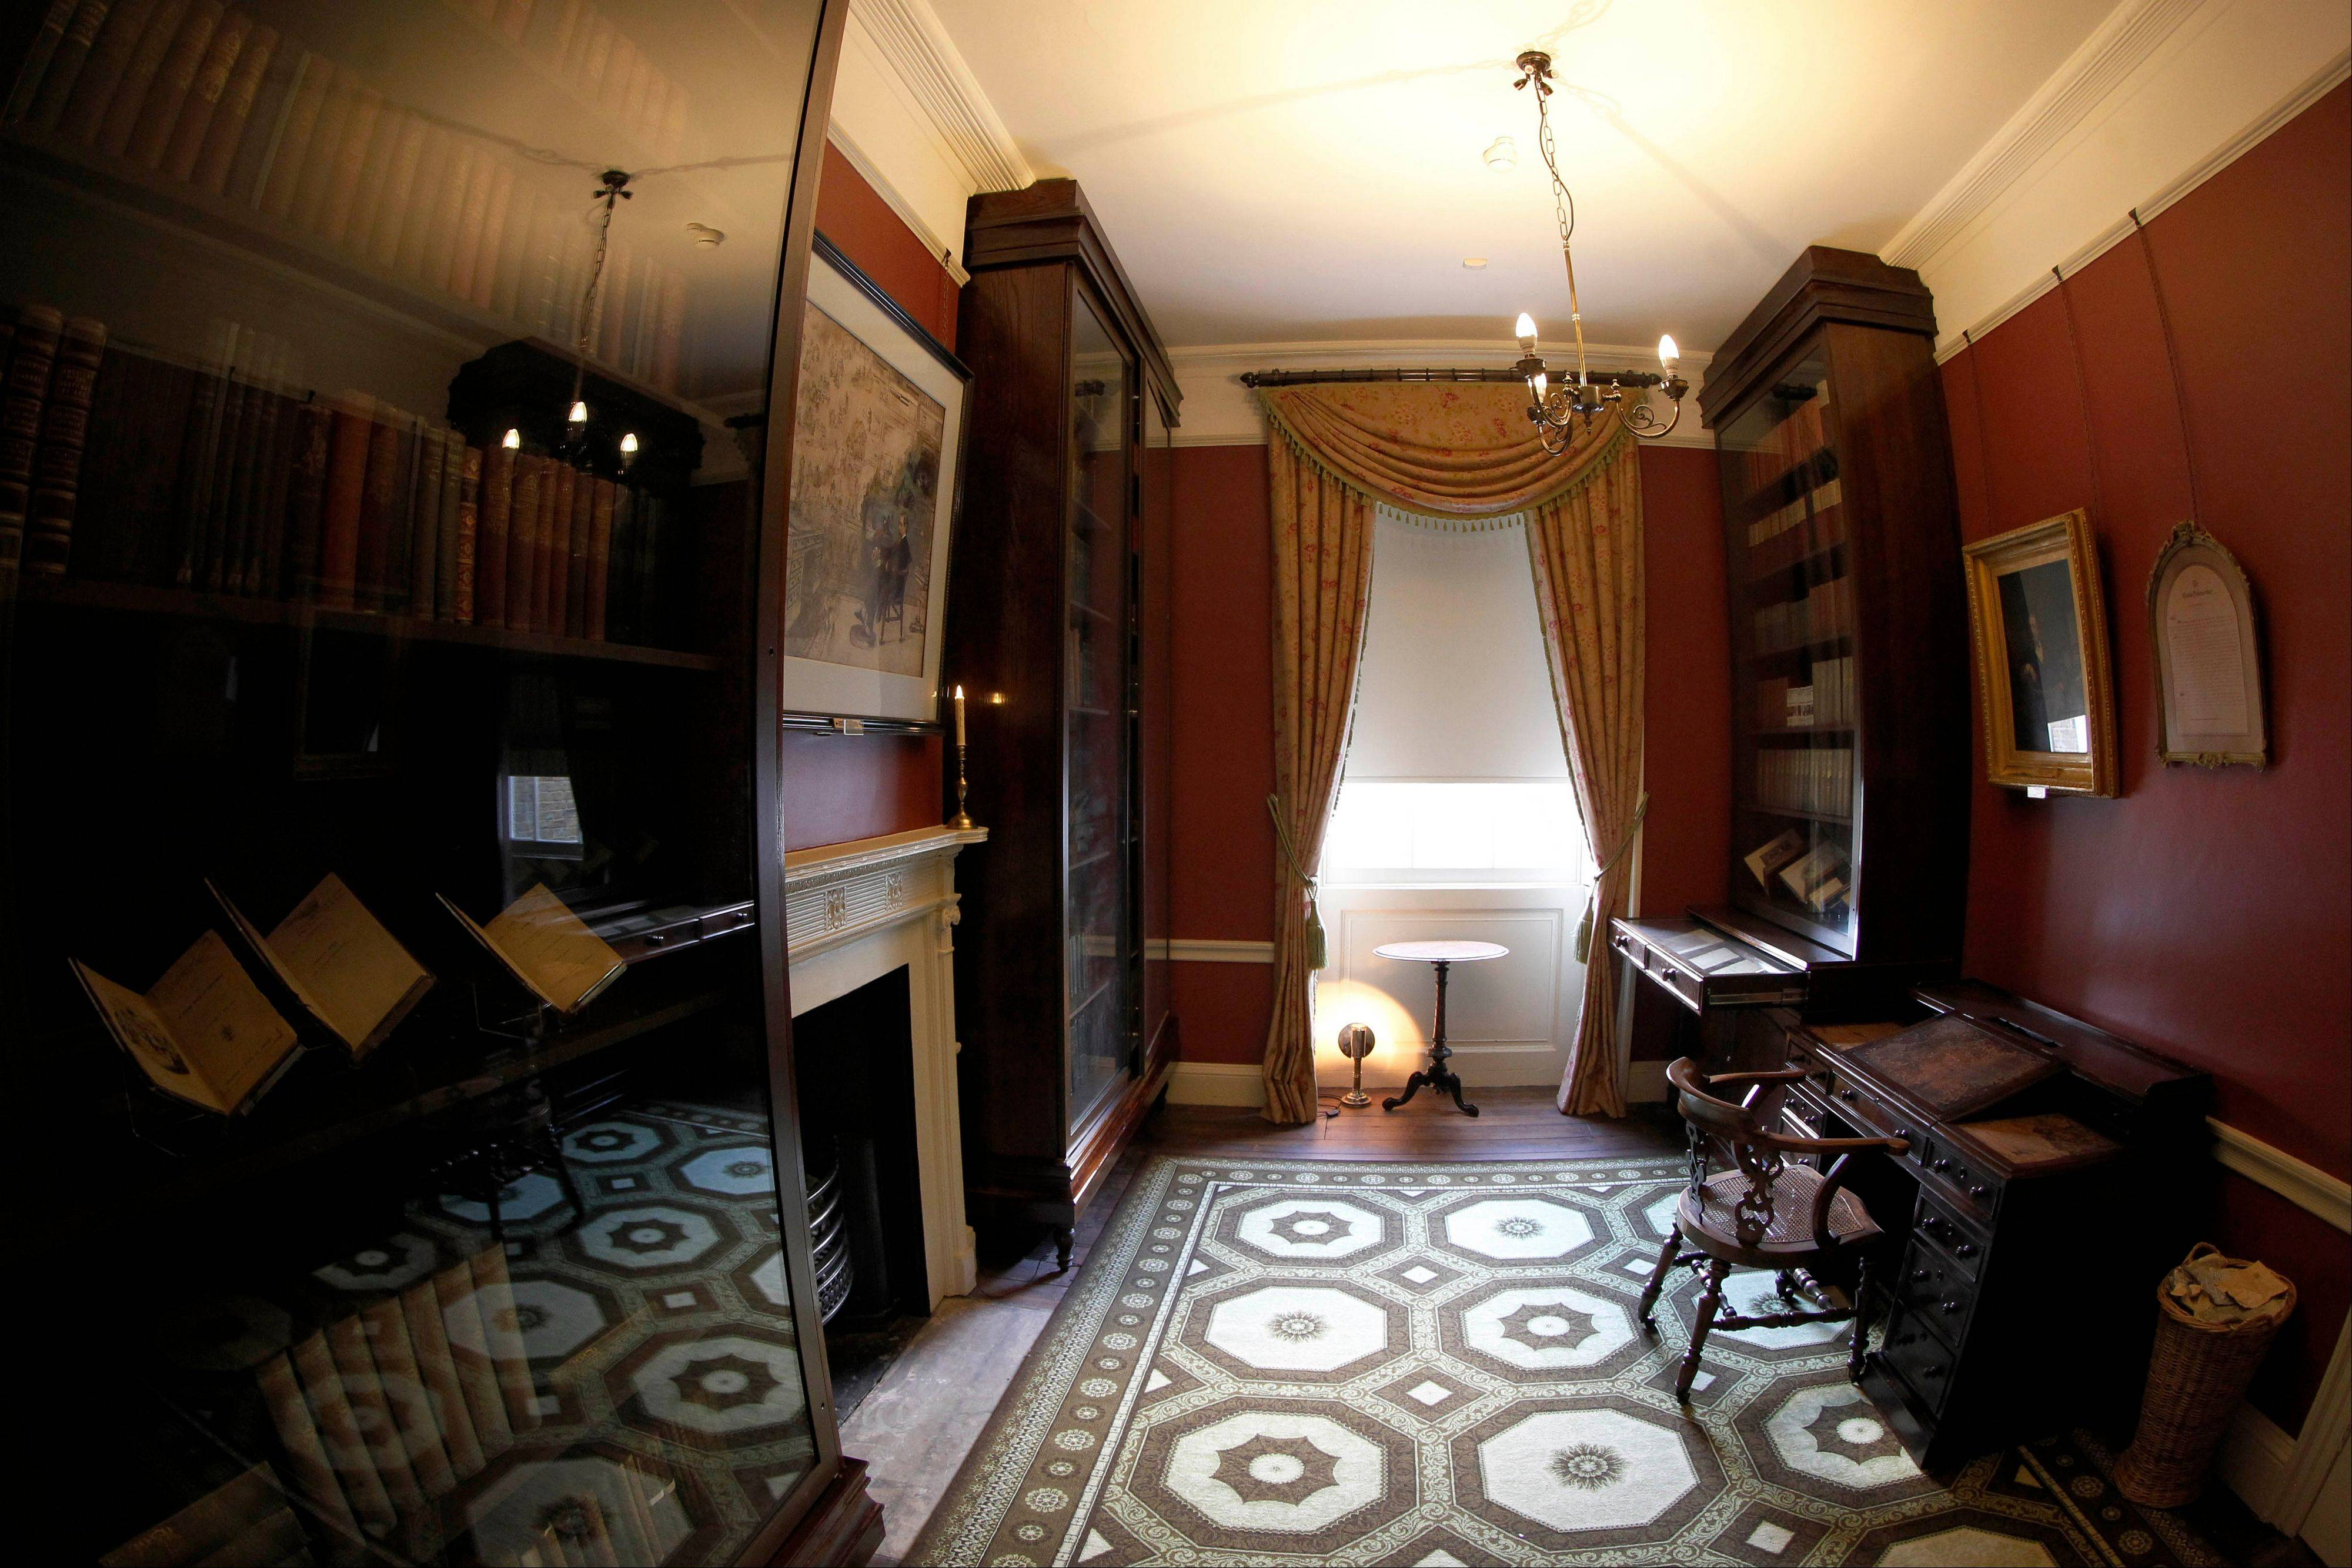 The study in Charles Dickens' home is part of the Charles Dickens Museum in London. After a $4.8 million makeover, it has been restored to bring the writer's world to life.